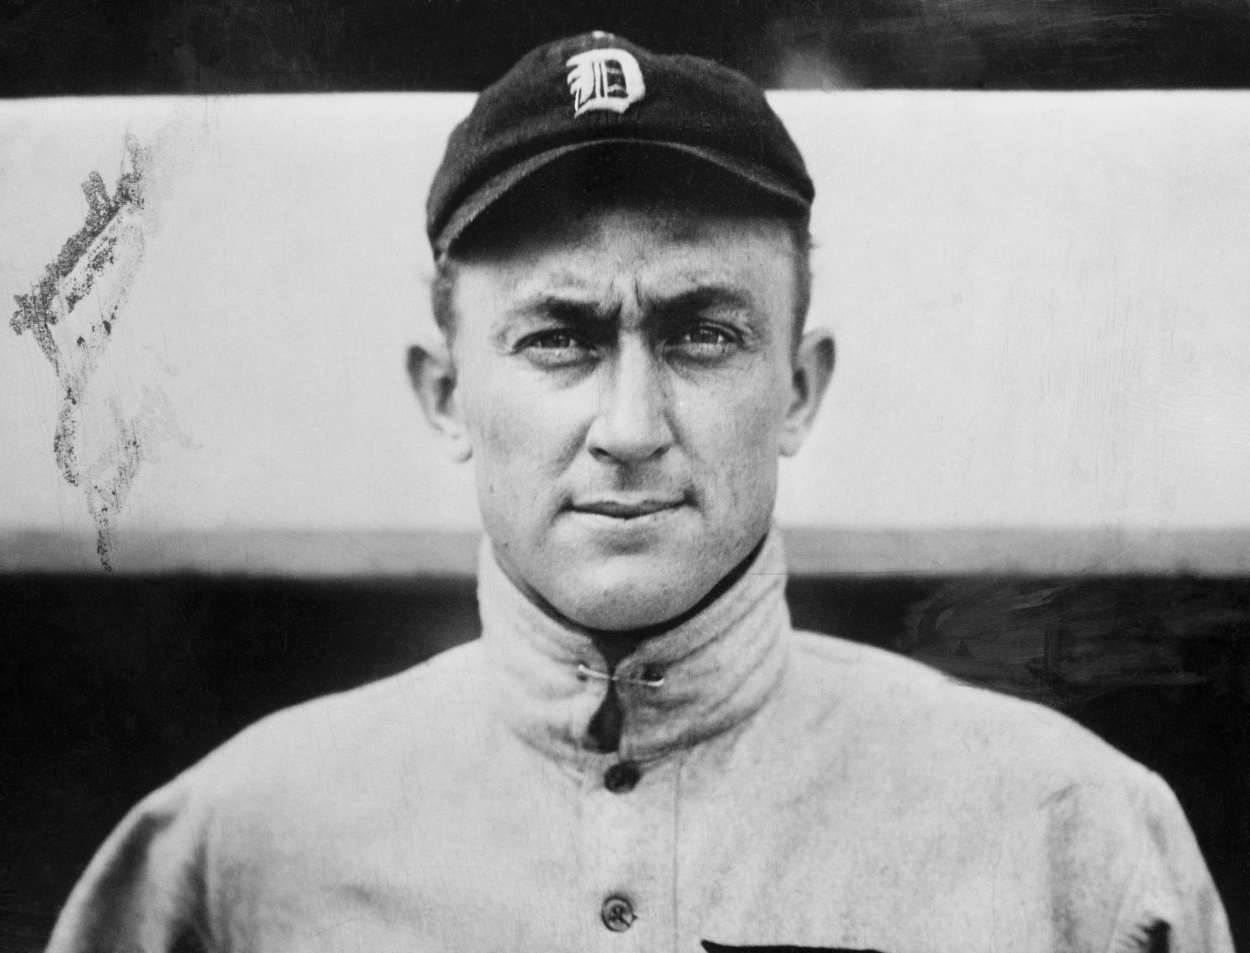 Ty Cobb poses for a photo in his Tigers uniform